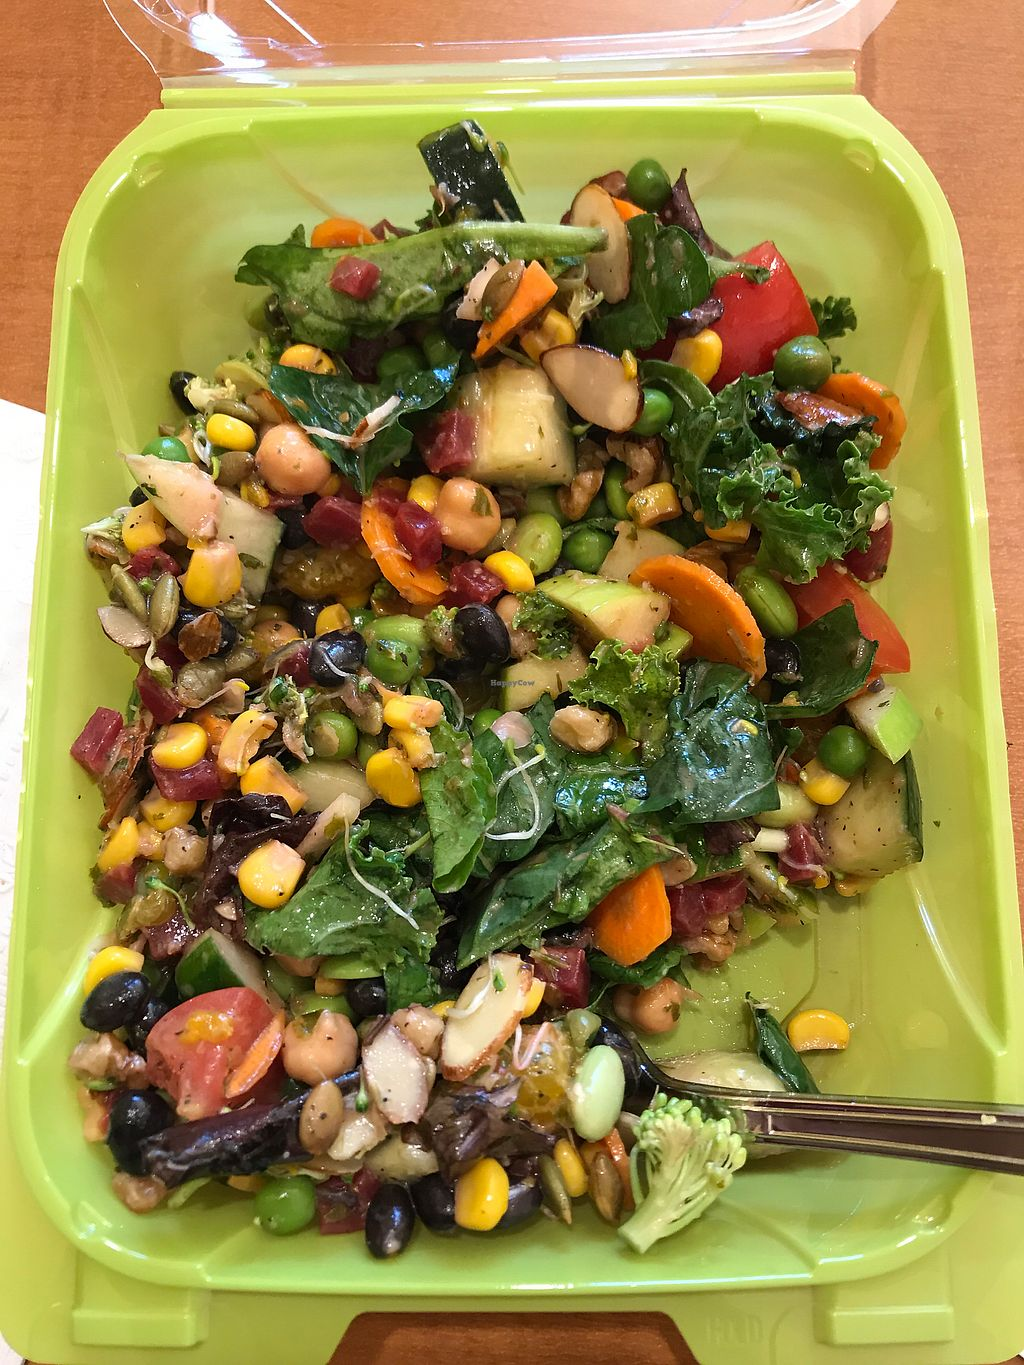 """Photo of Salata - I 10  by <a href=""""/members/profile/jennypark"""">jennypark</a> <br/>yum yum  <br/> August 22, 2017  - <a href='/contact/abuse/image/46382/295926'>Report</a>"""